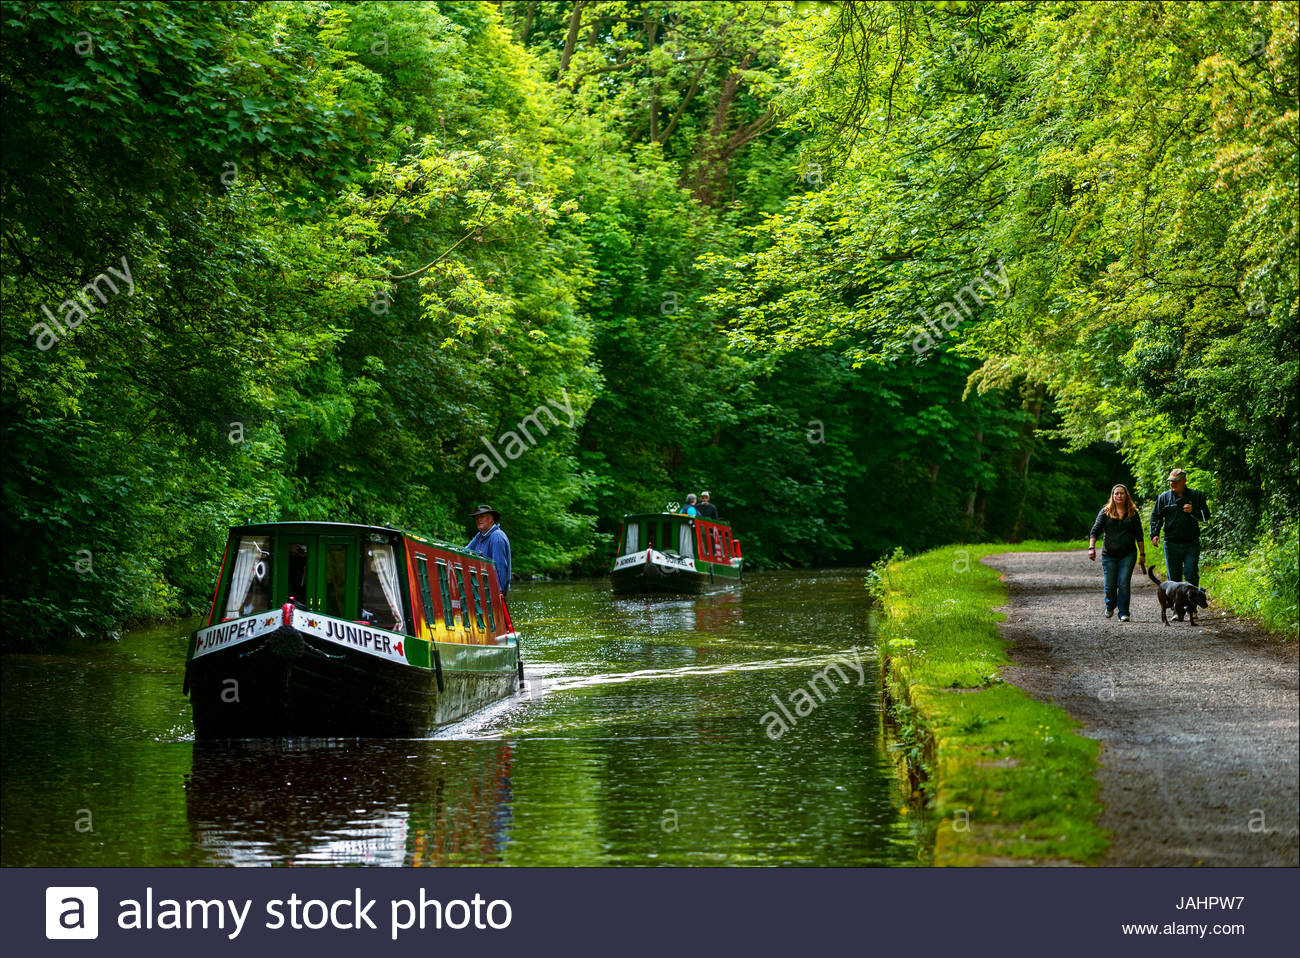 Two canal boats filled with tourists approach the Bingley Five Rise Lock staircase on the Leeds and Liverpool Cana - Stock Image